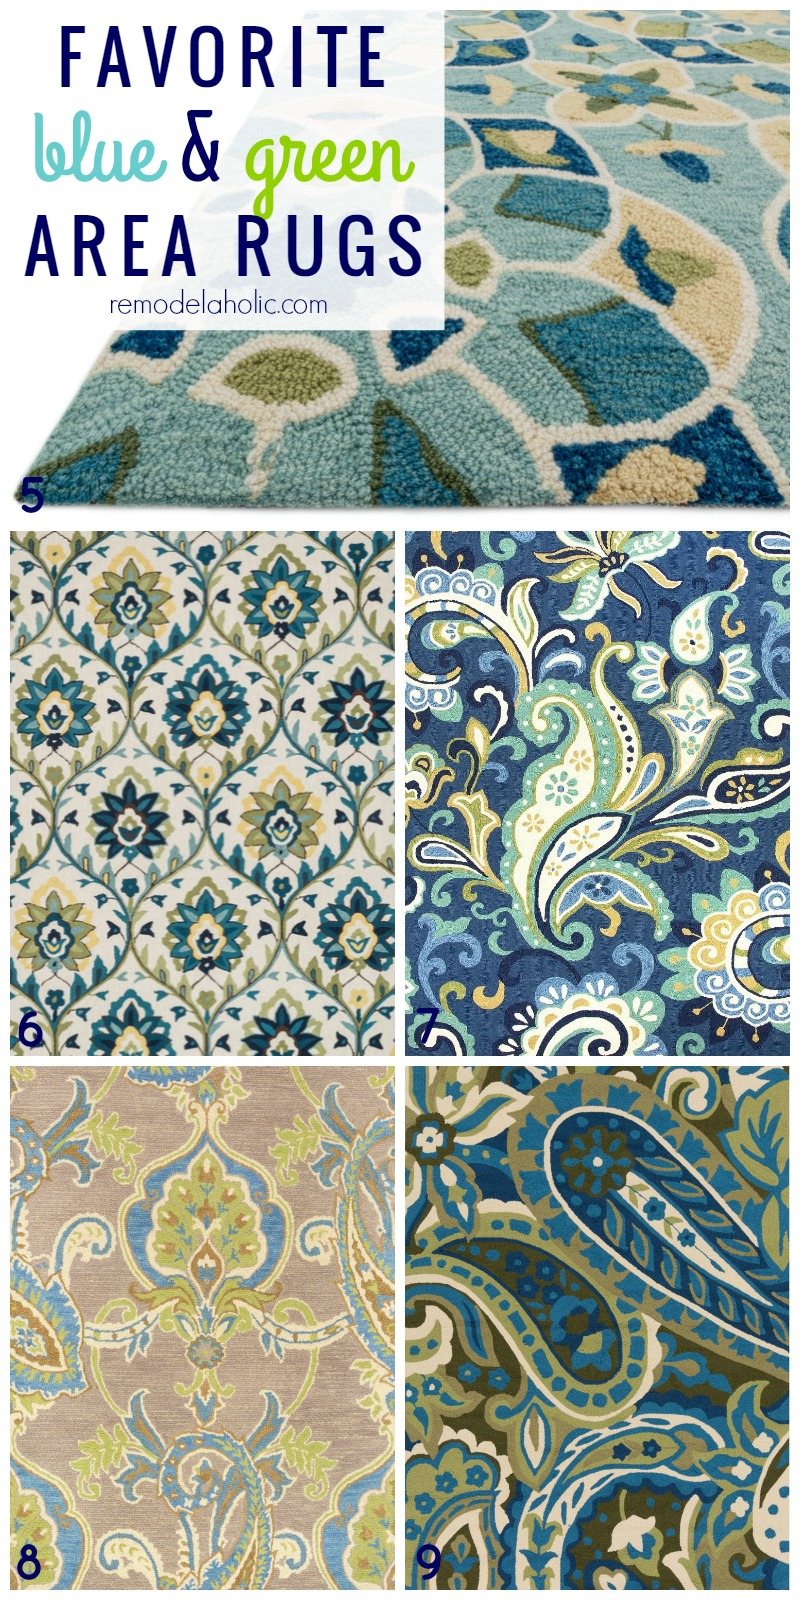 blue and green area rugs - rug designs